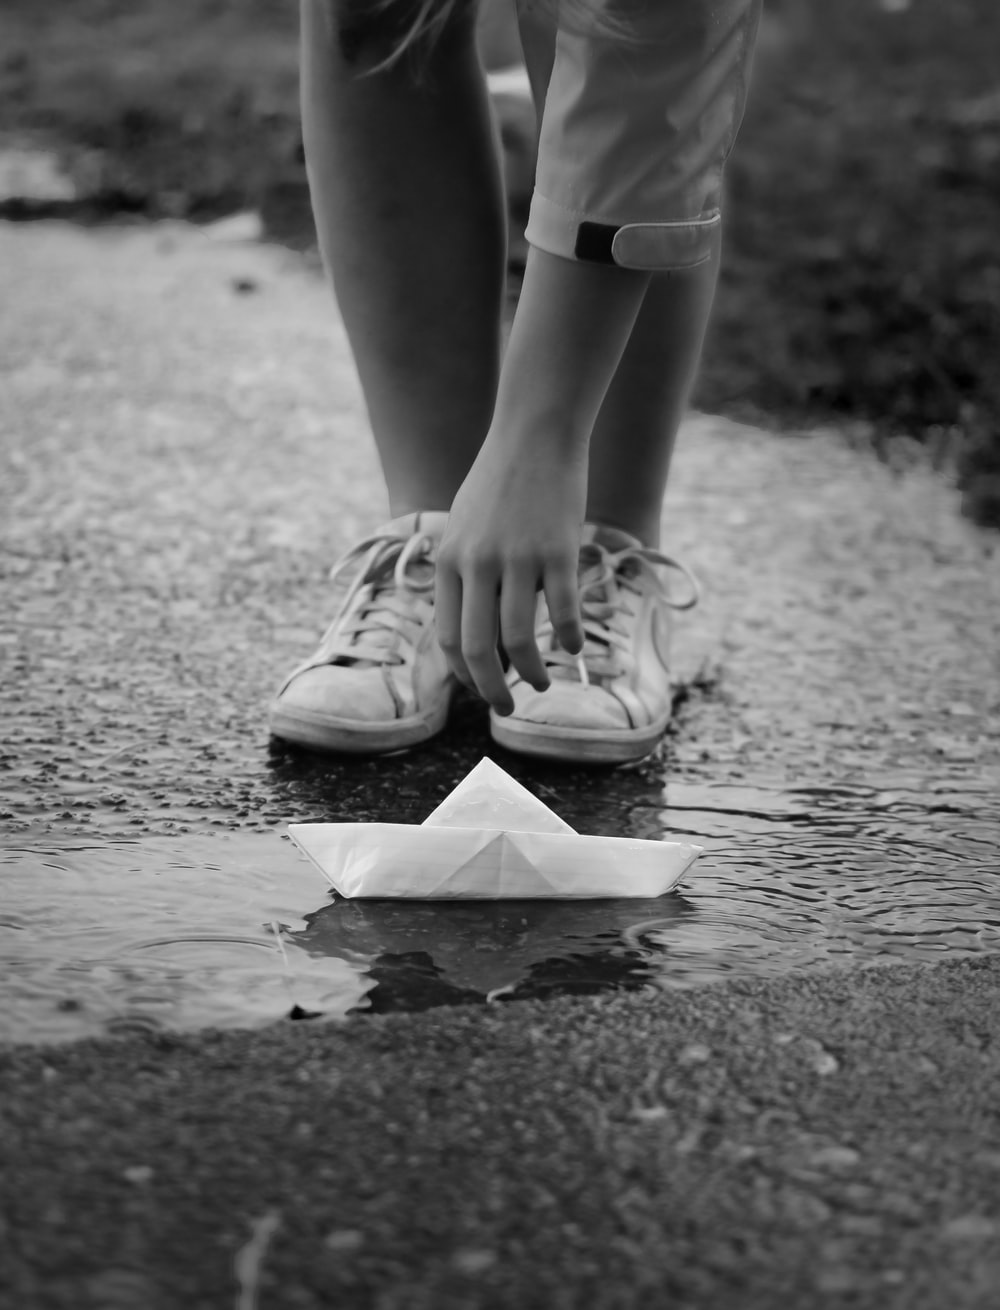 grayscale photo of person in white shorts and sneakers standing on wet road